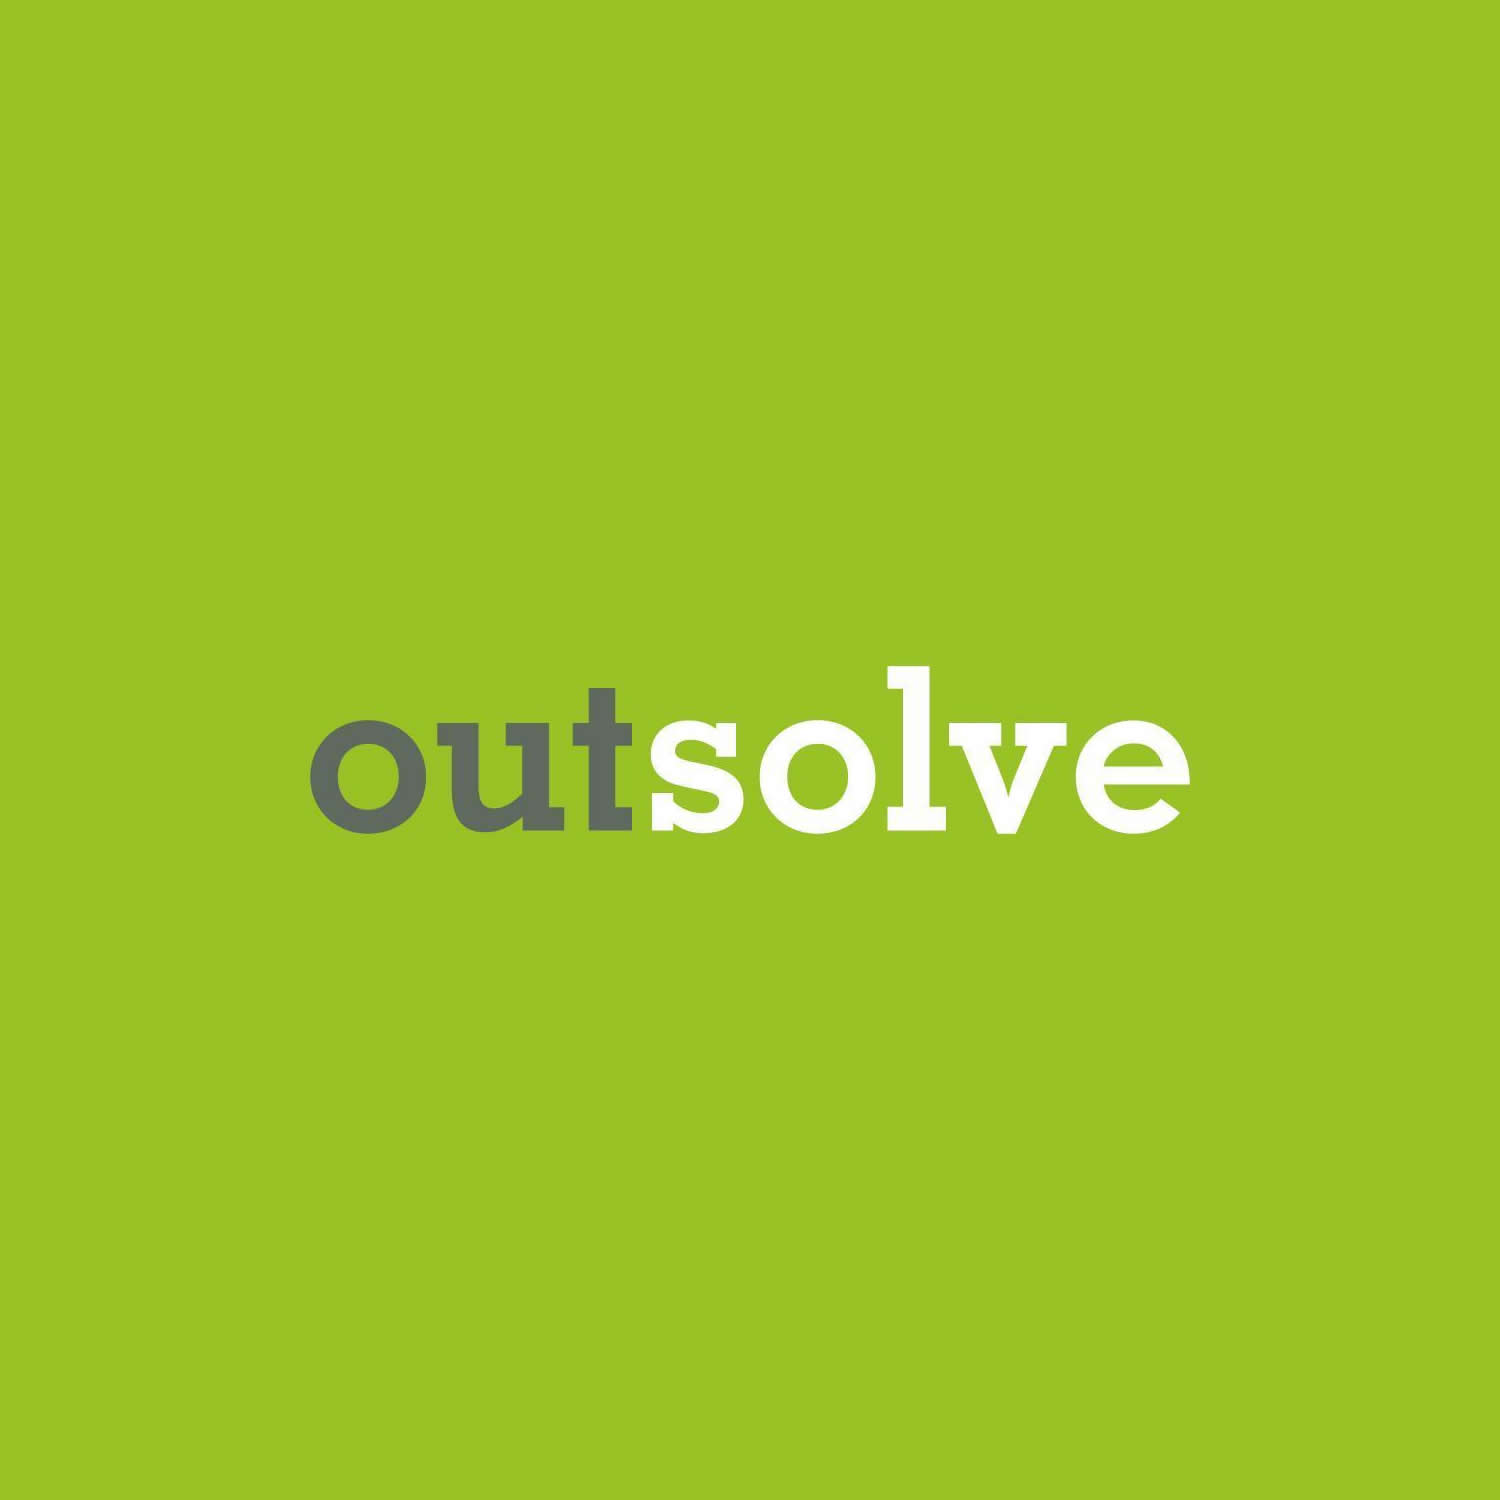 OutSolve Announces Strategic Partnership with Roffman Horvitz, PLC